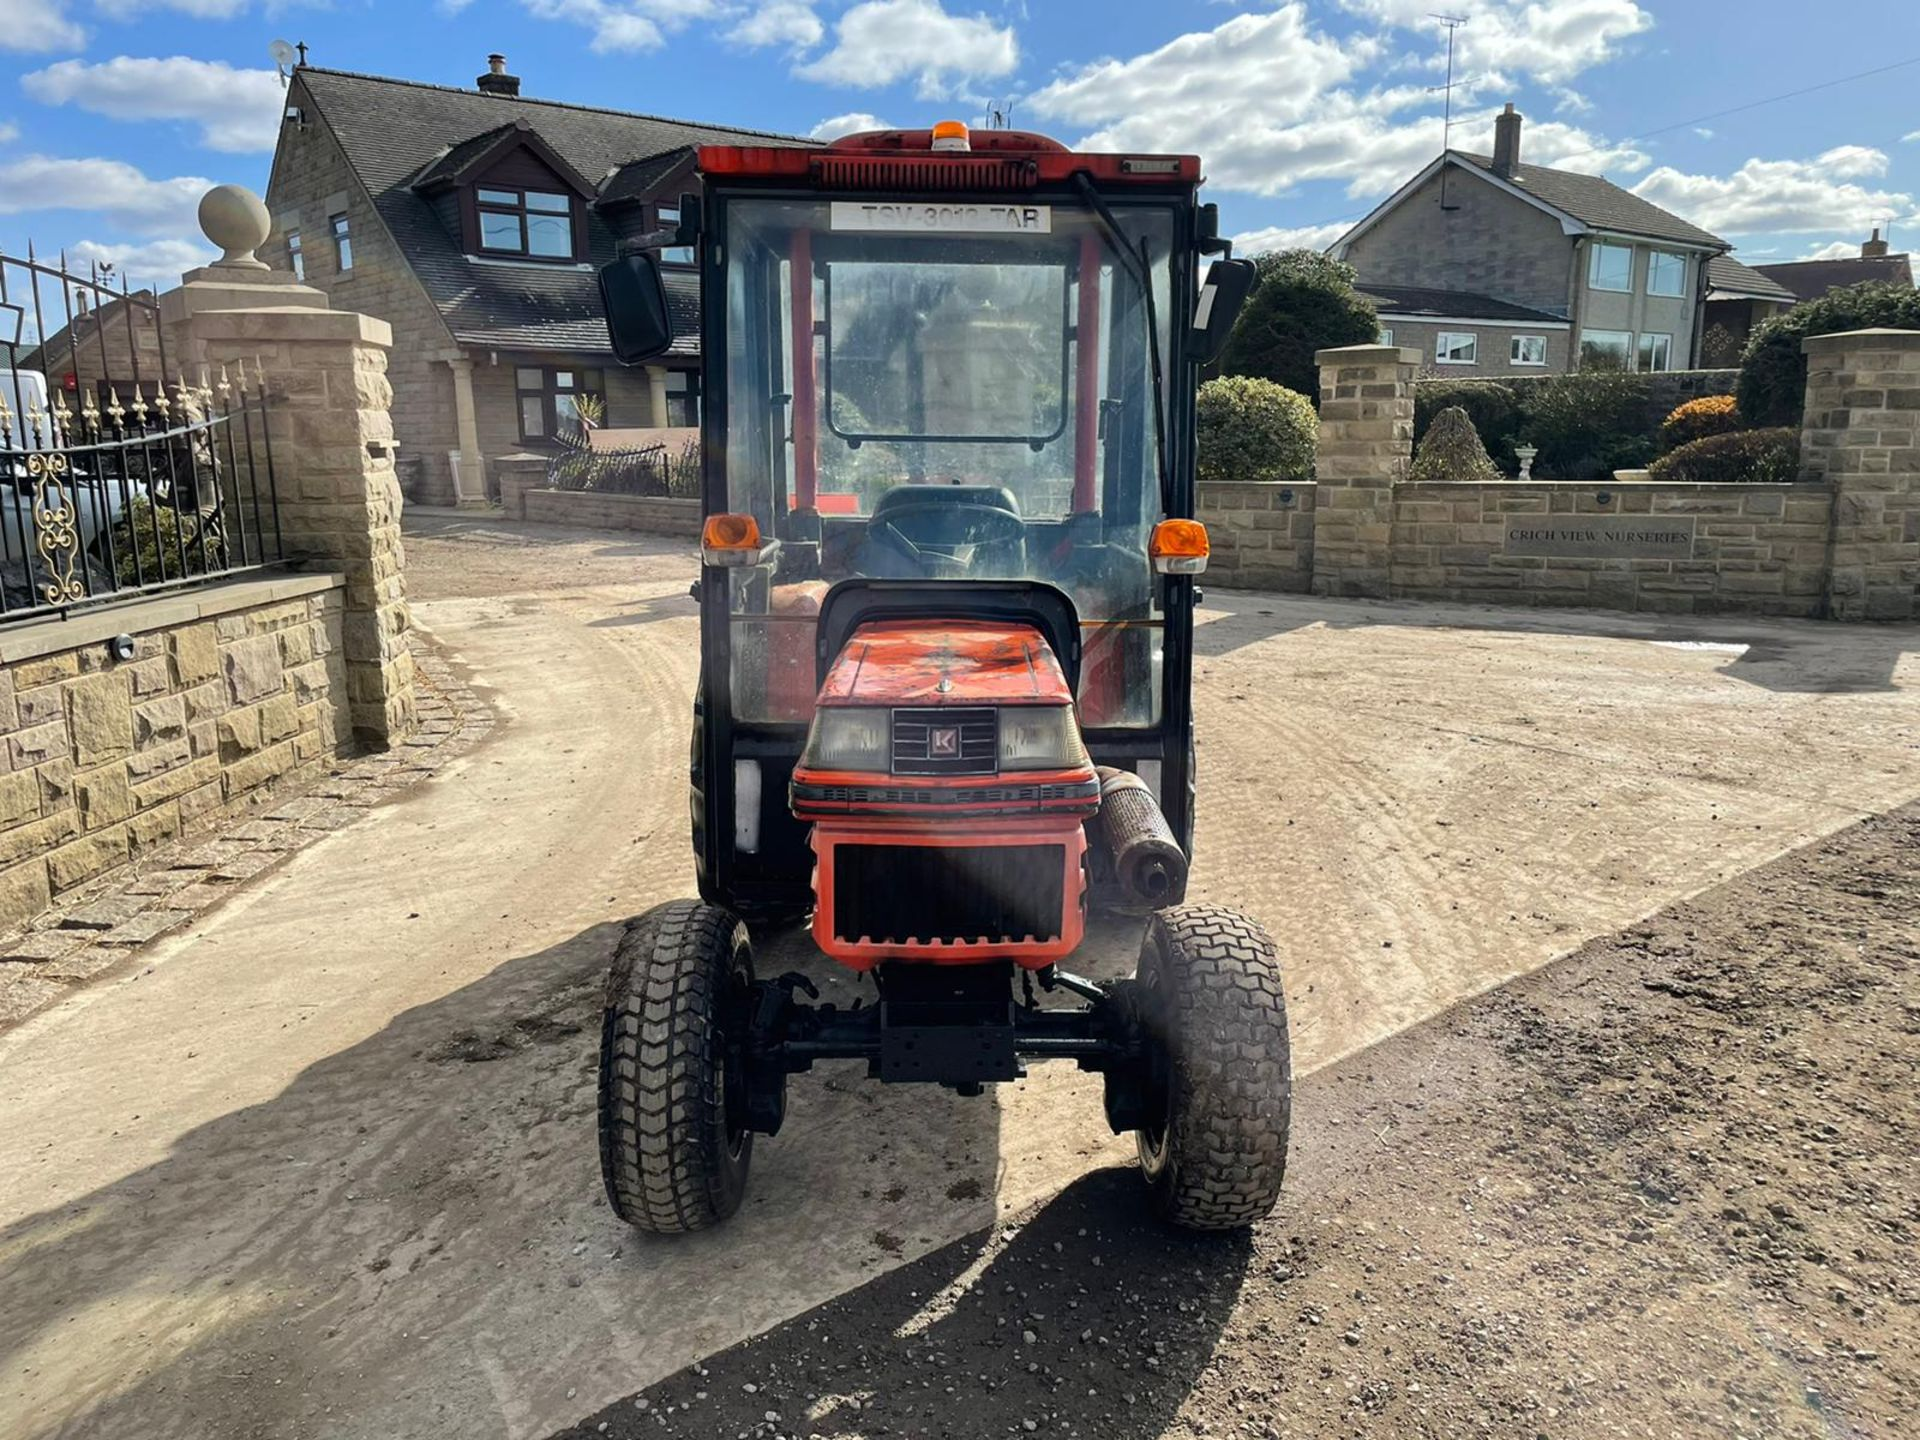 KUBOTA B2150 COMPACT TRACTOR, RUNS AND DRIVES, 3 POINT LINKAGE, 23HP, HYDROSTATIC *PLUS VAT* - Image 5 of 6